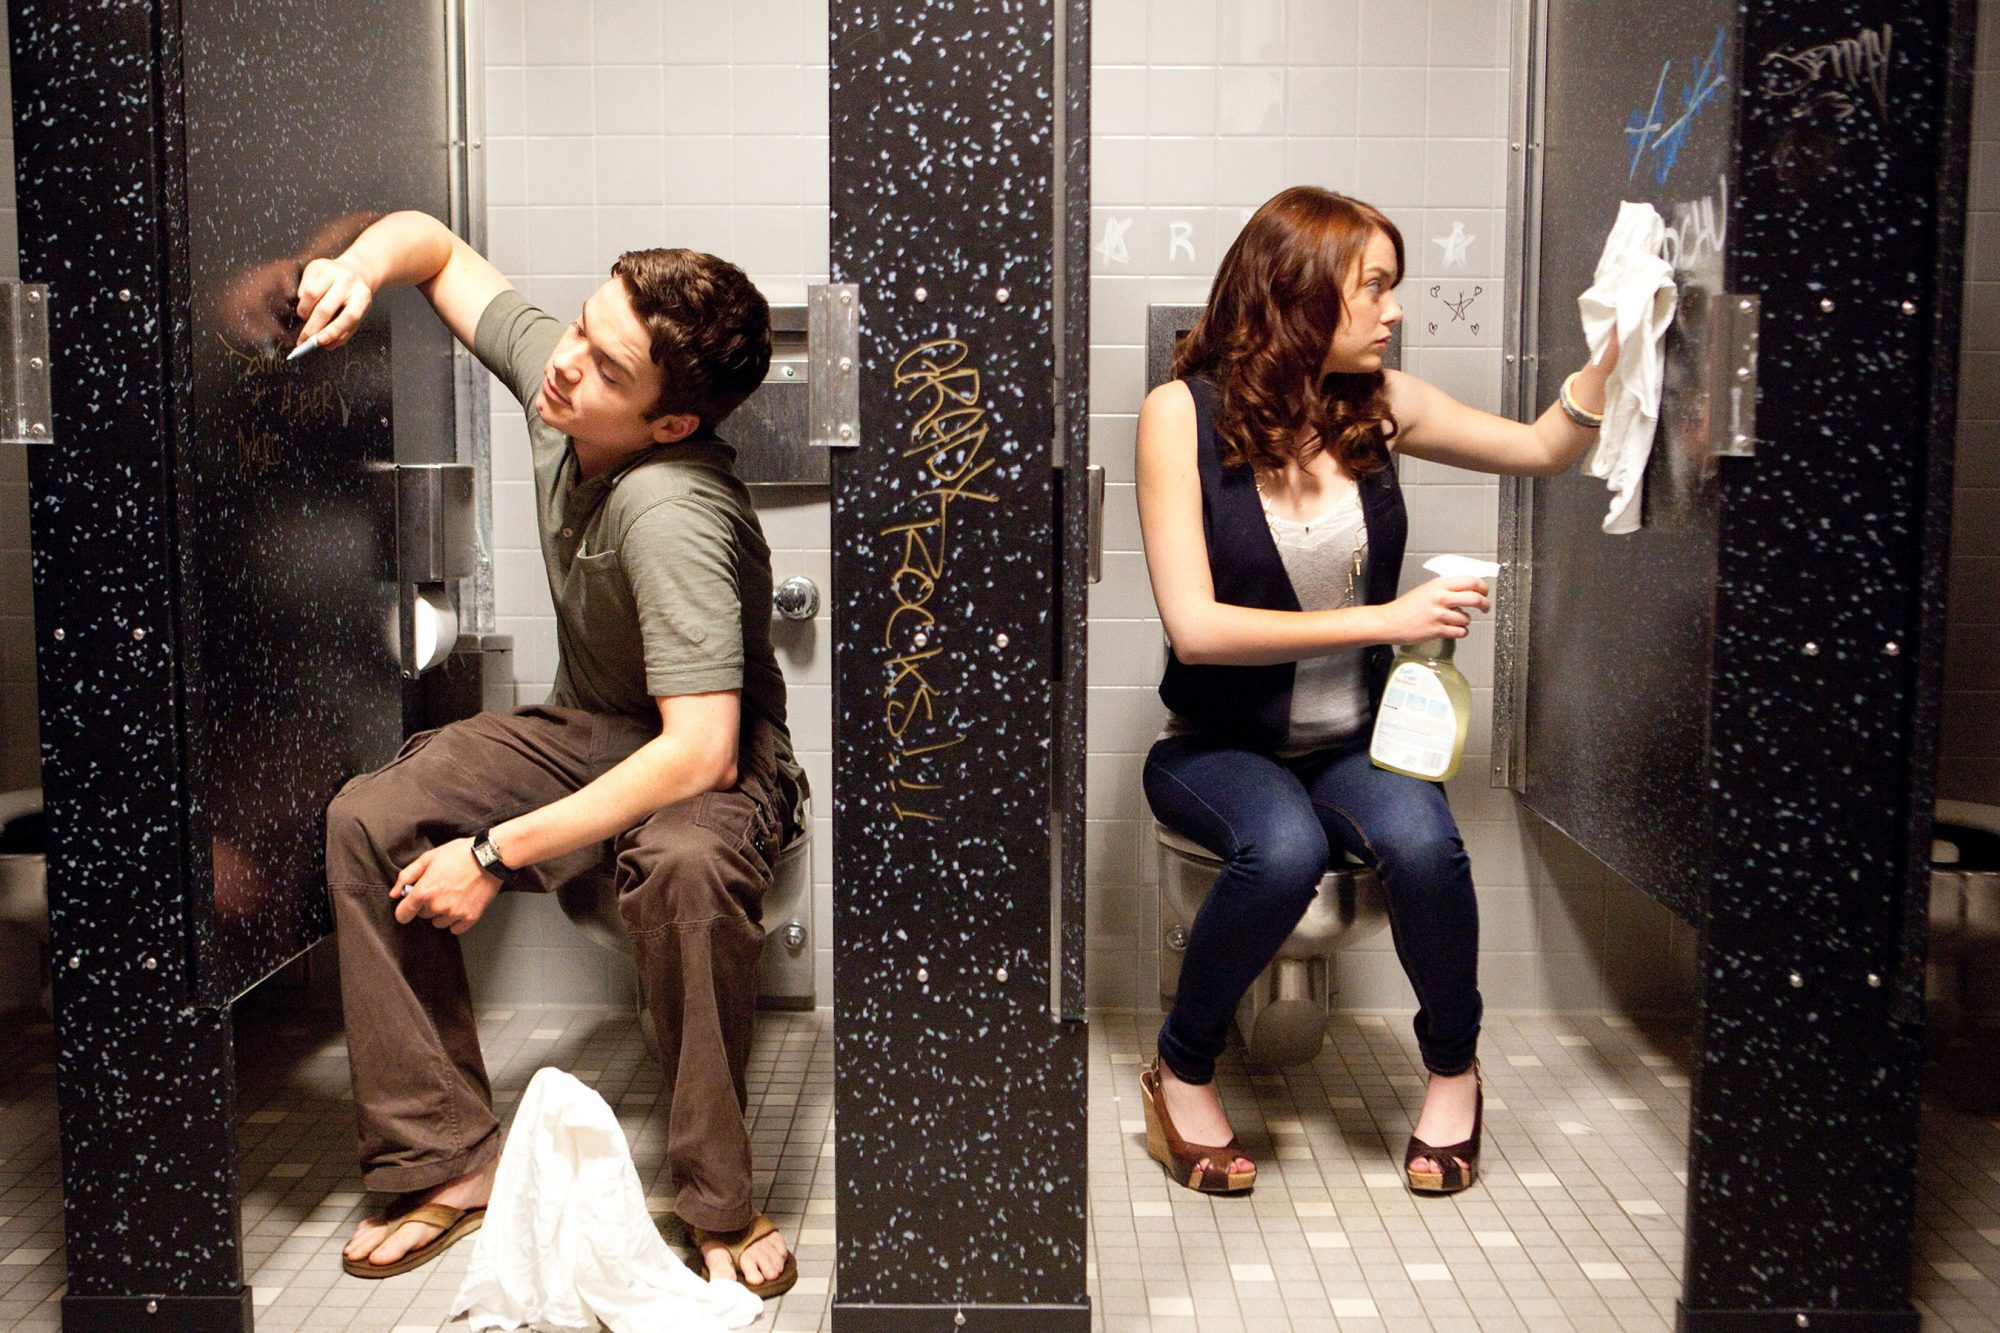 EASY A, from left: Dan Byrd, Emma Stone, 2010. ph: Adam Taylor/©Screen Gems/Courtesy Everett Collect